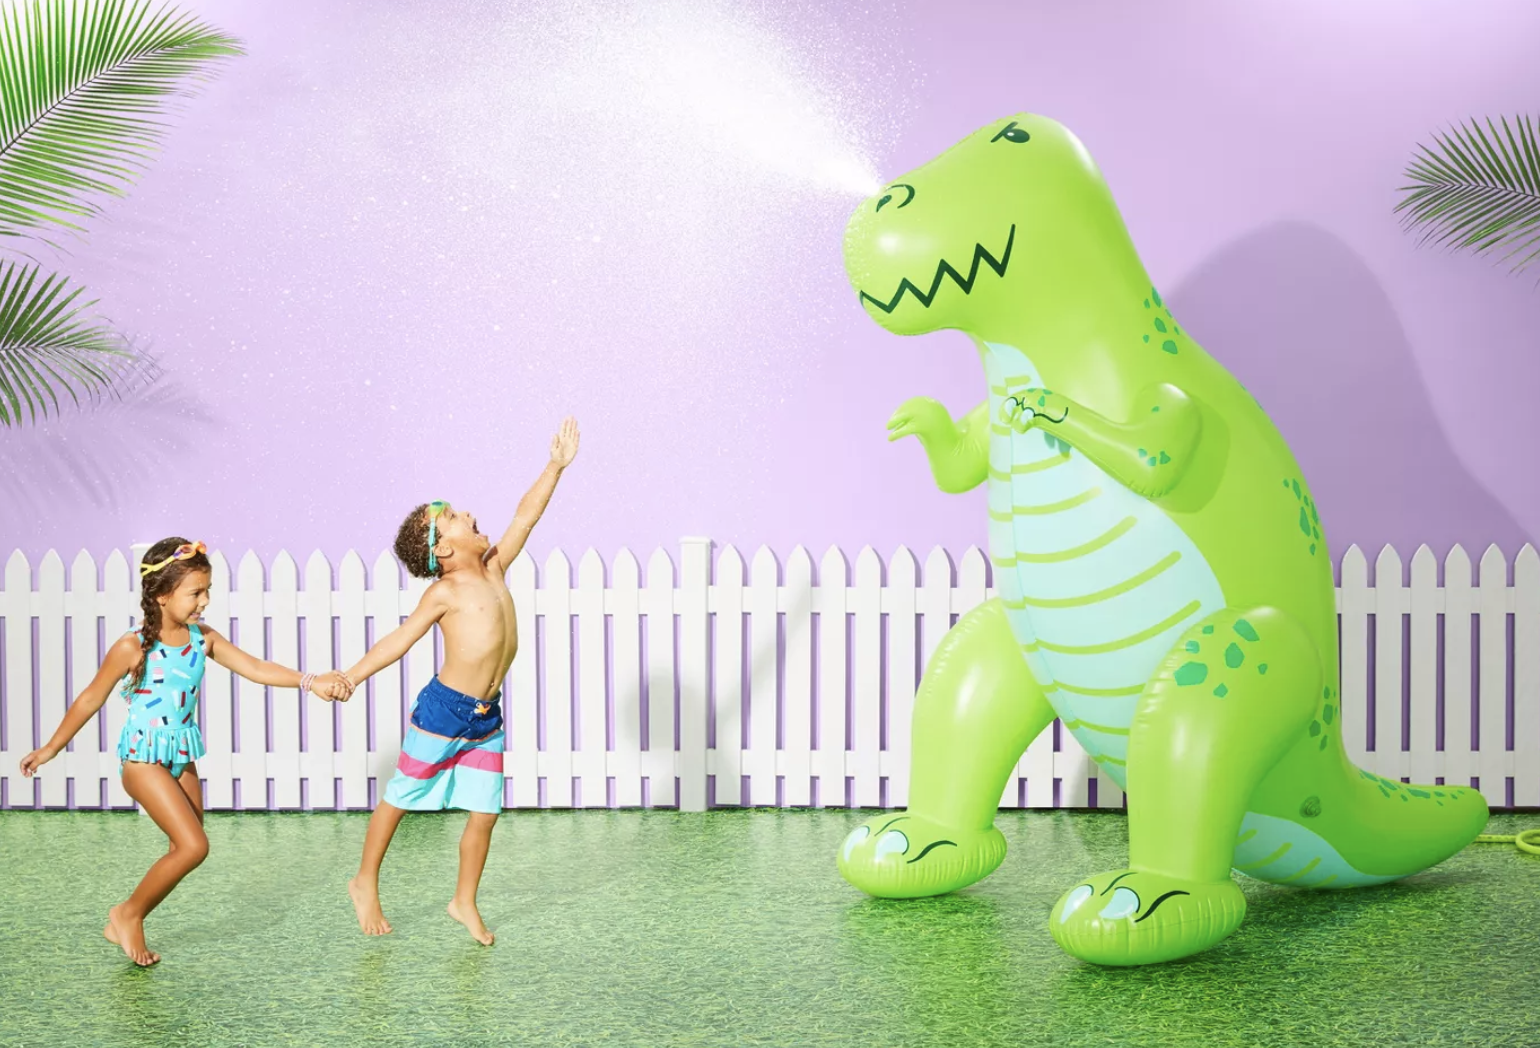 Two kids in swimsuits playing next to the six foot inflatable dinosaur that shoots out water from its nose